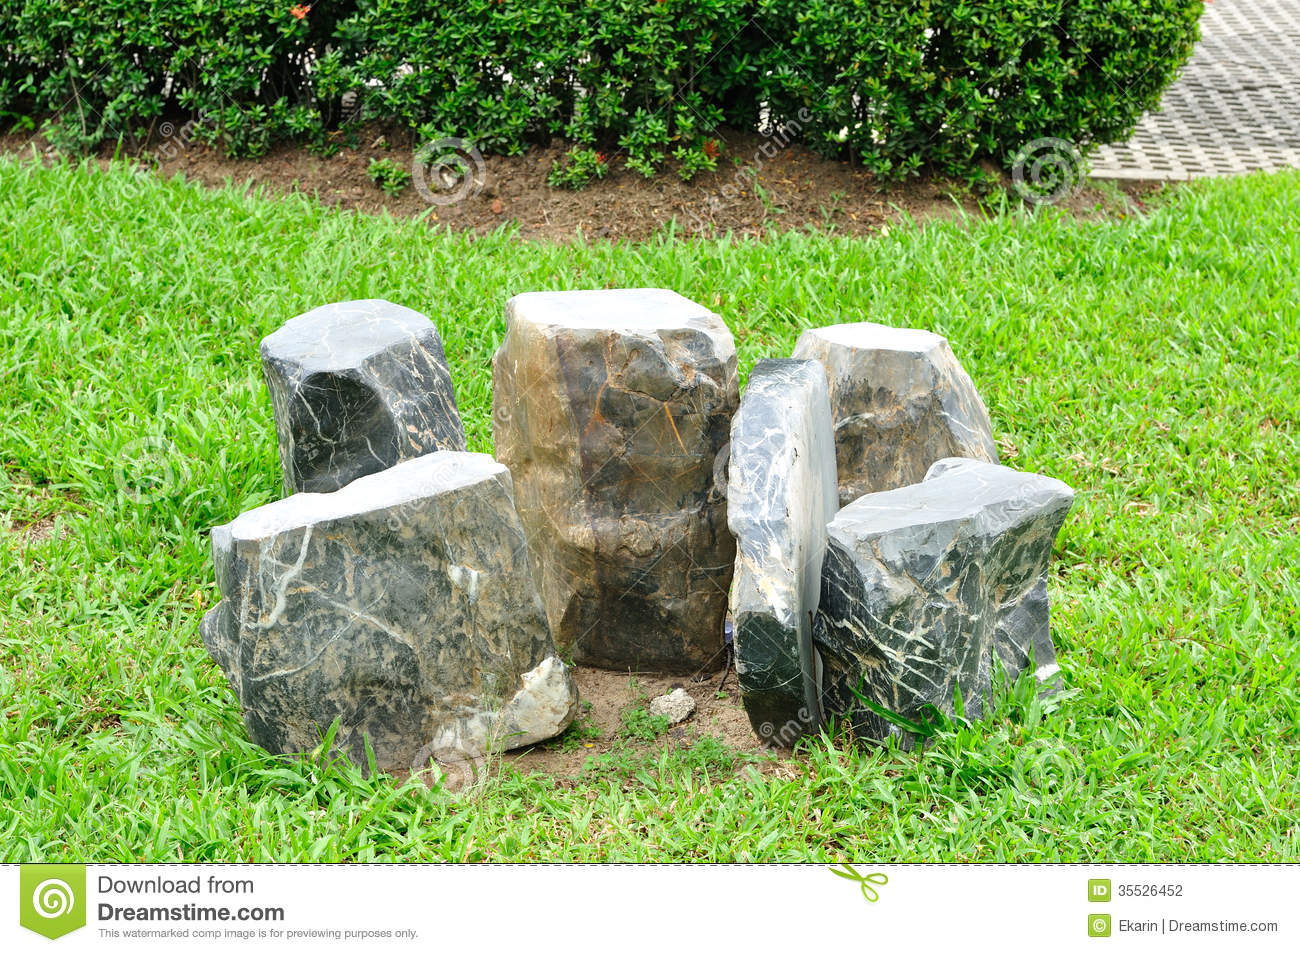 Exceptional Table And Chairs Set Made From Rock. Nature, Outdoor.